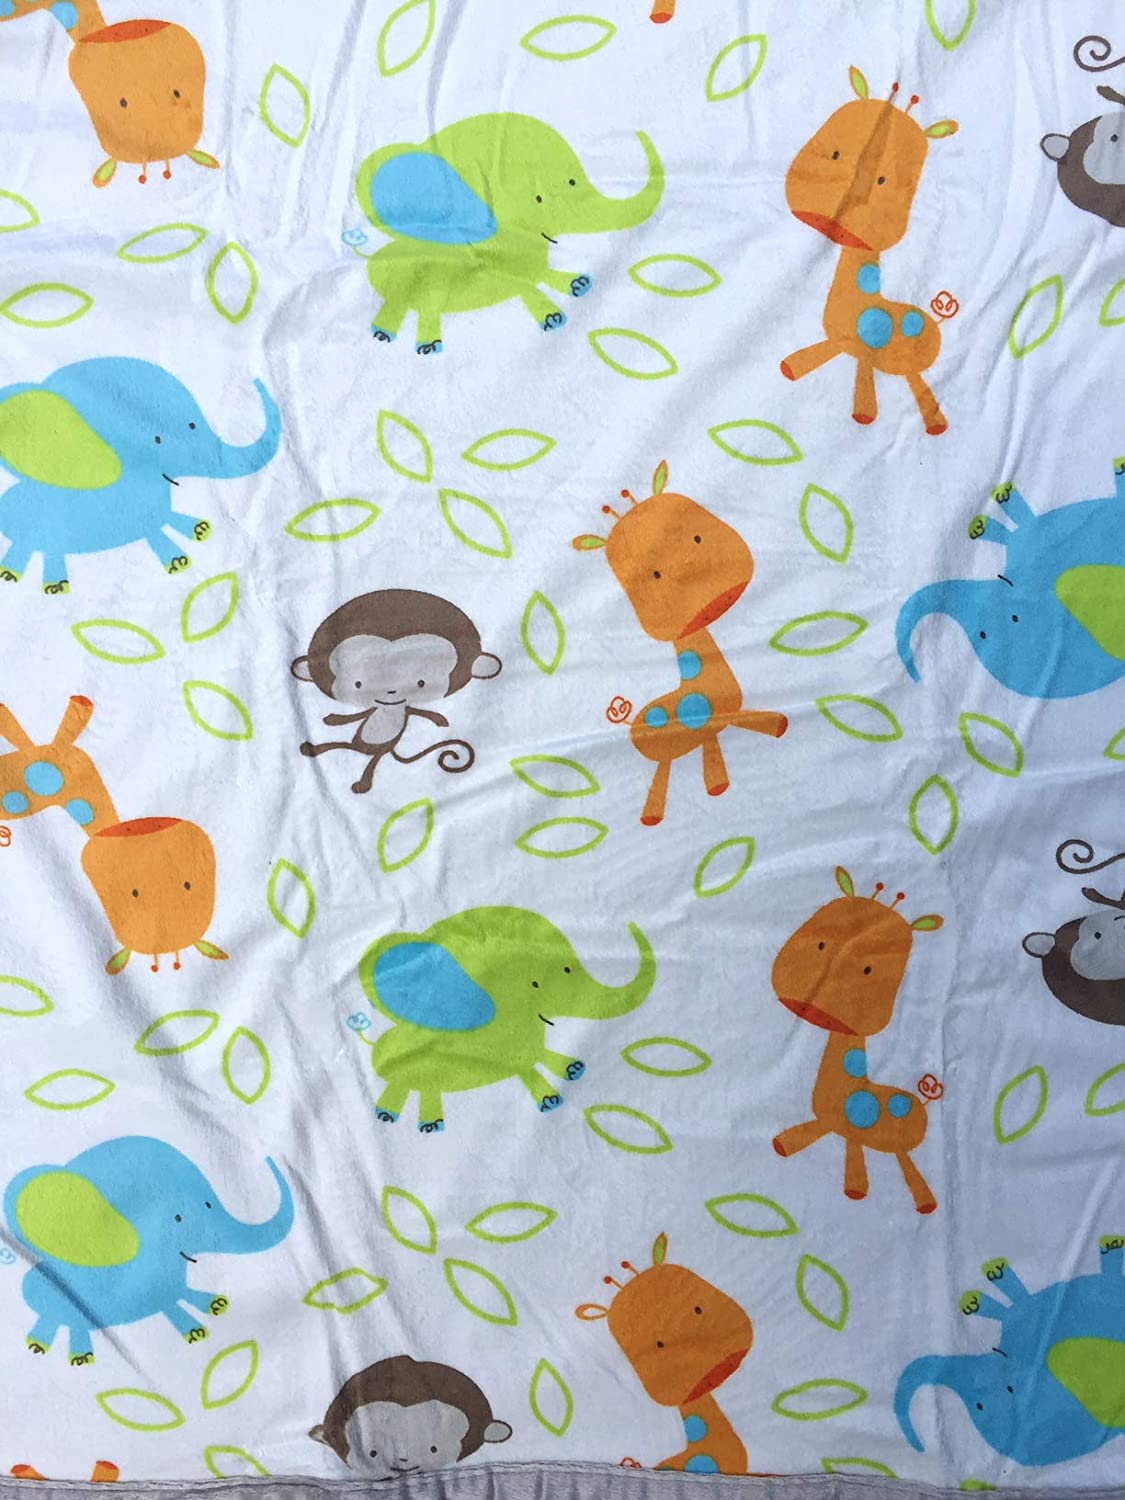 Mint Swirl Boy Baby Blanket Multiple Designs and Themes Sherpa Backing Extra Soft Micro Plush Fleece Blanket Warm and Cozy Anti-Pilling